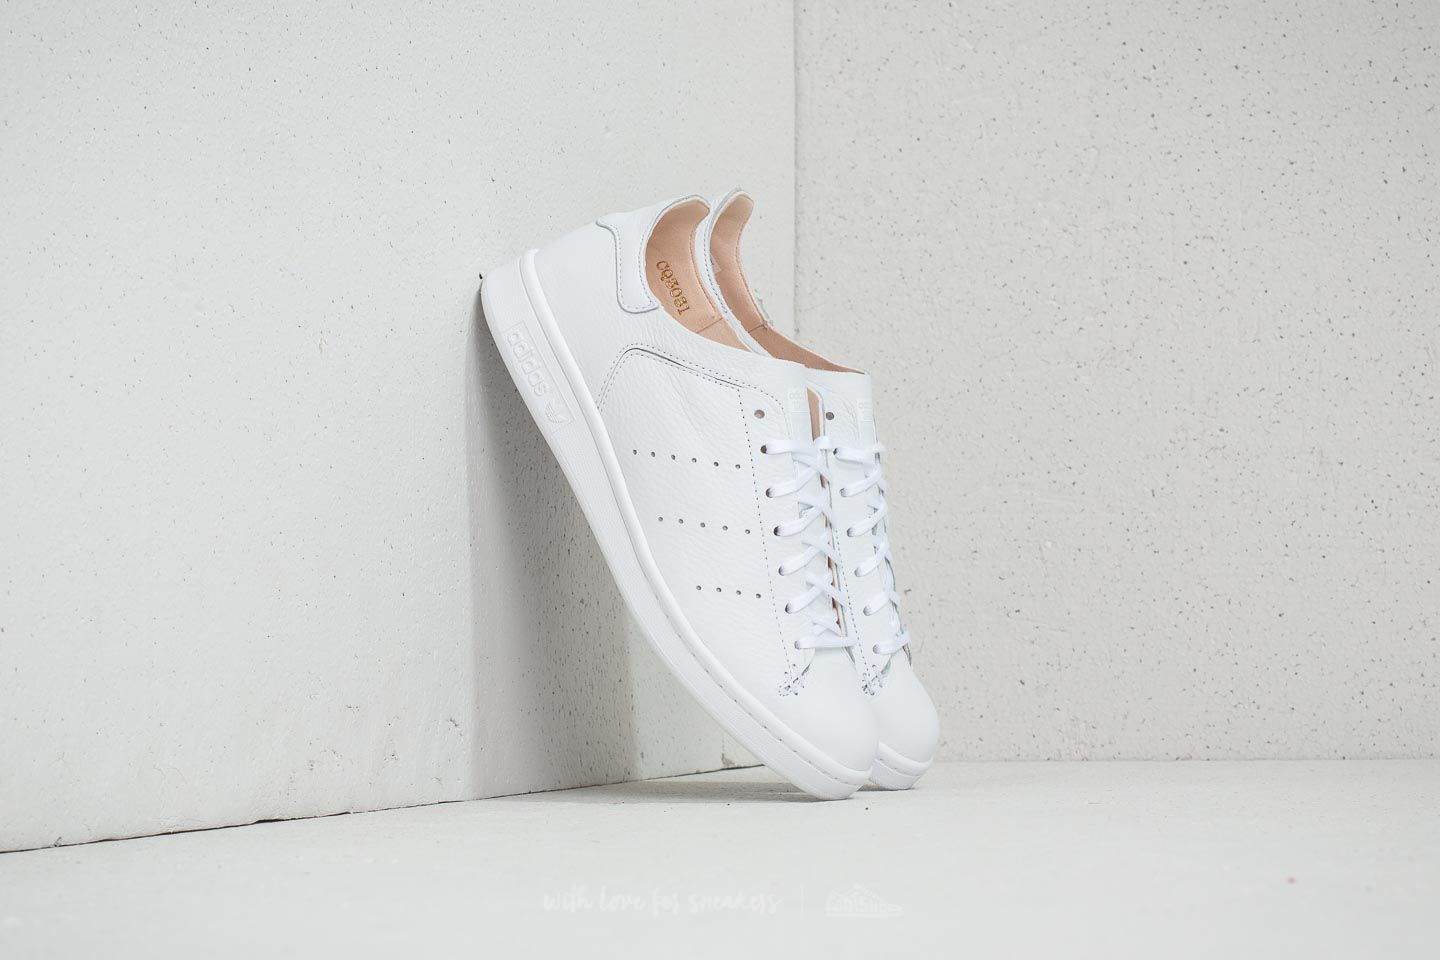 adidas Stan Smith Leather Sock Ftw White  Ftw White  Ftw White a prezzo  eccezionale 9081fbac20f5e